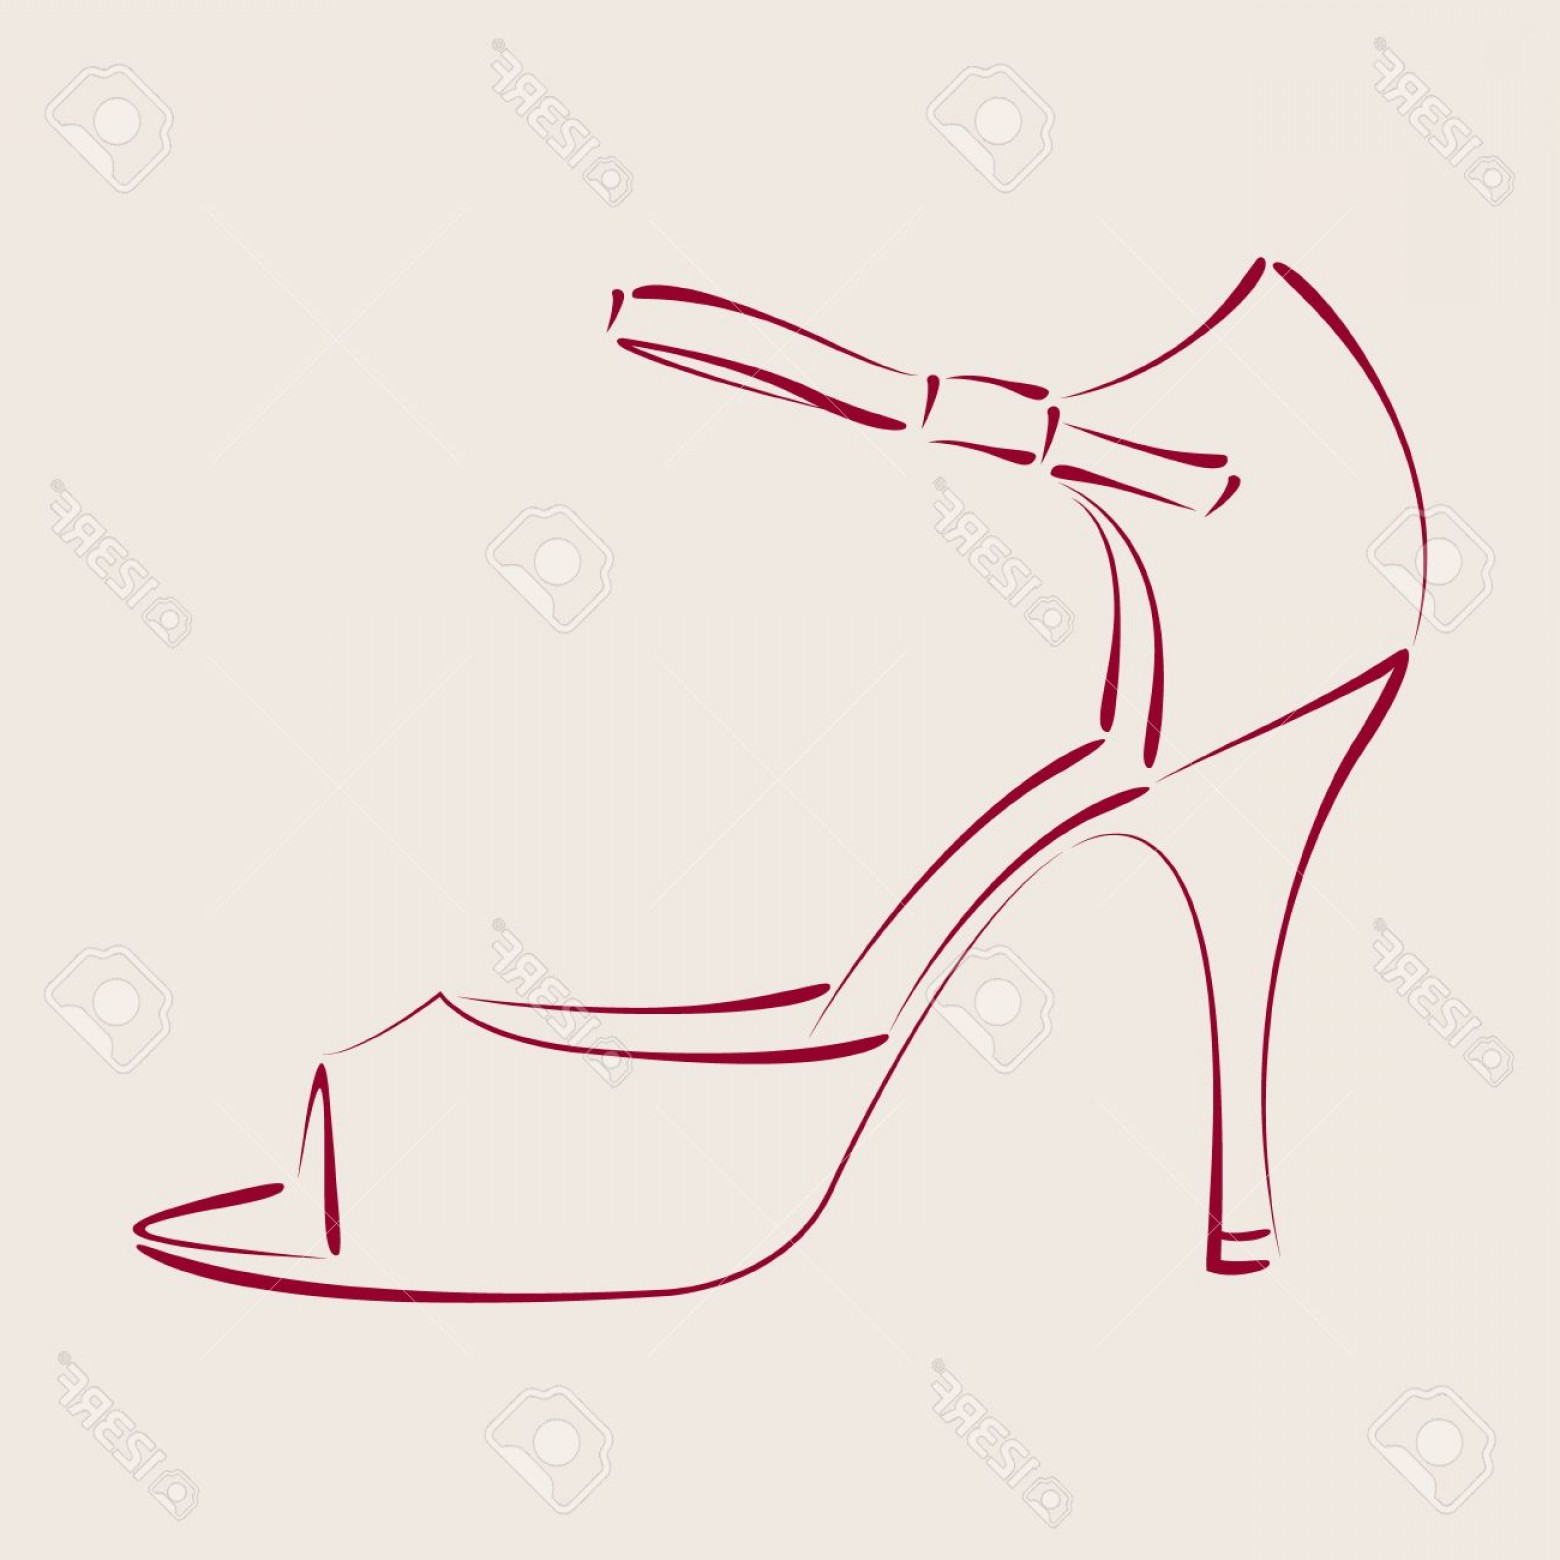 Dance Shoes Vector Art: Photostock Vector Elegant Sketched Woman S Shoe Argentine Tango Dance Shoes Background Can Be Easily Removed Design Te